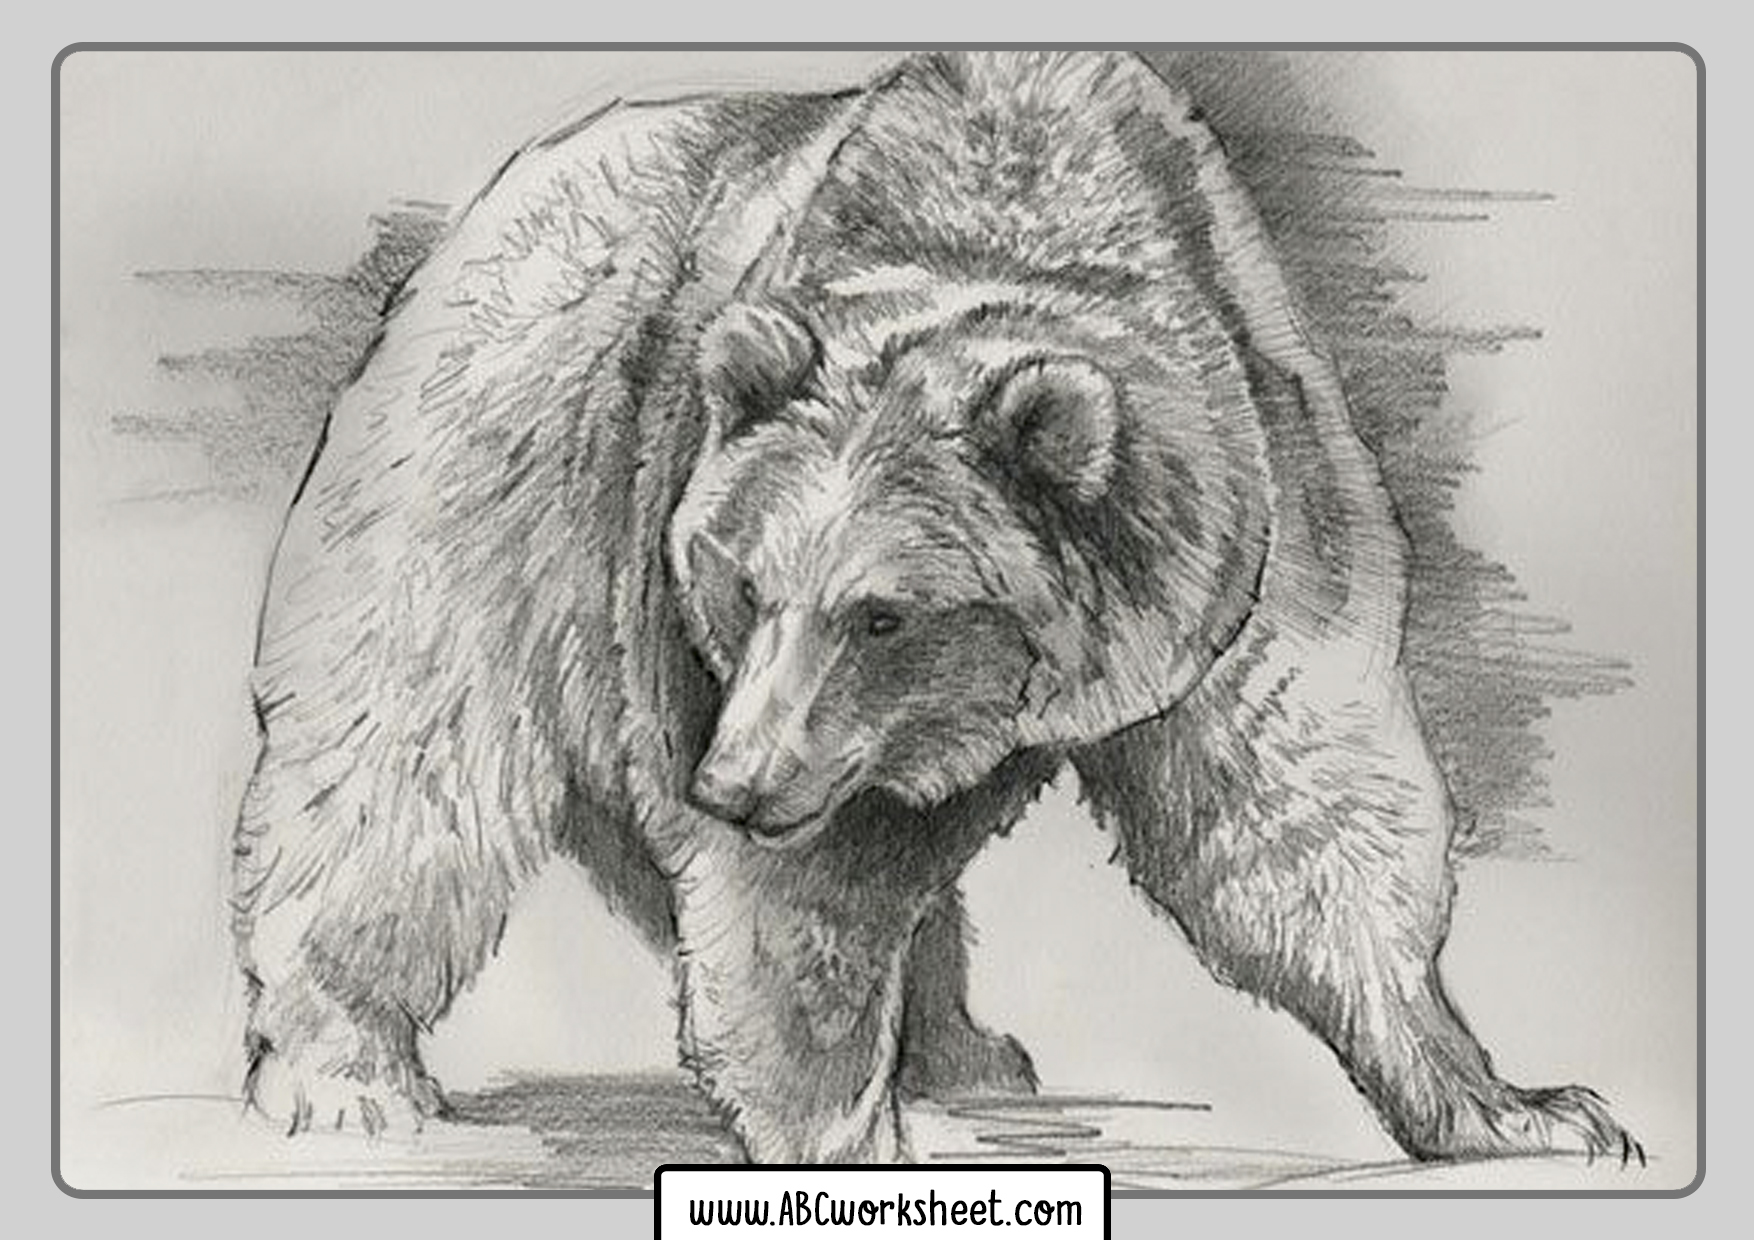 Grizzly Bear Coloring Sheets For Kids